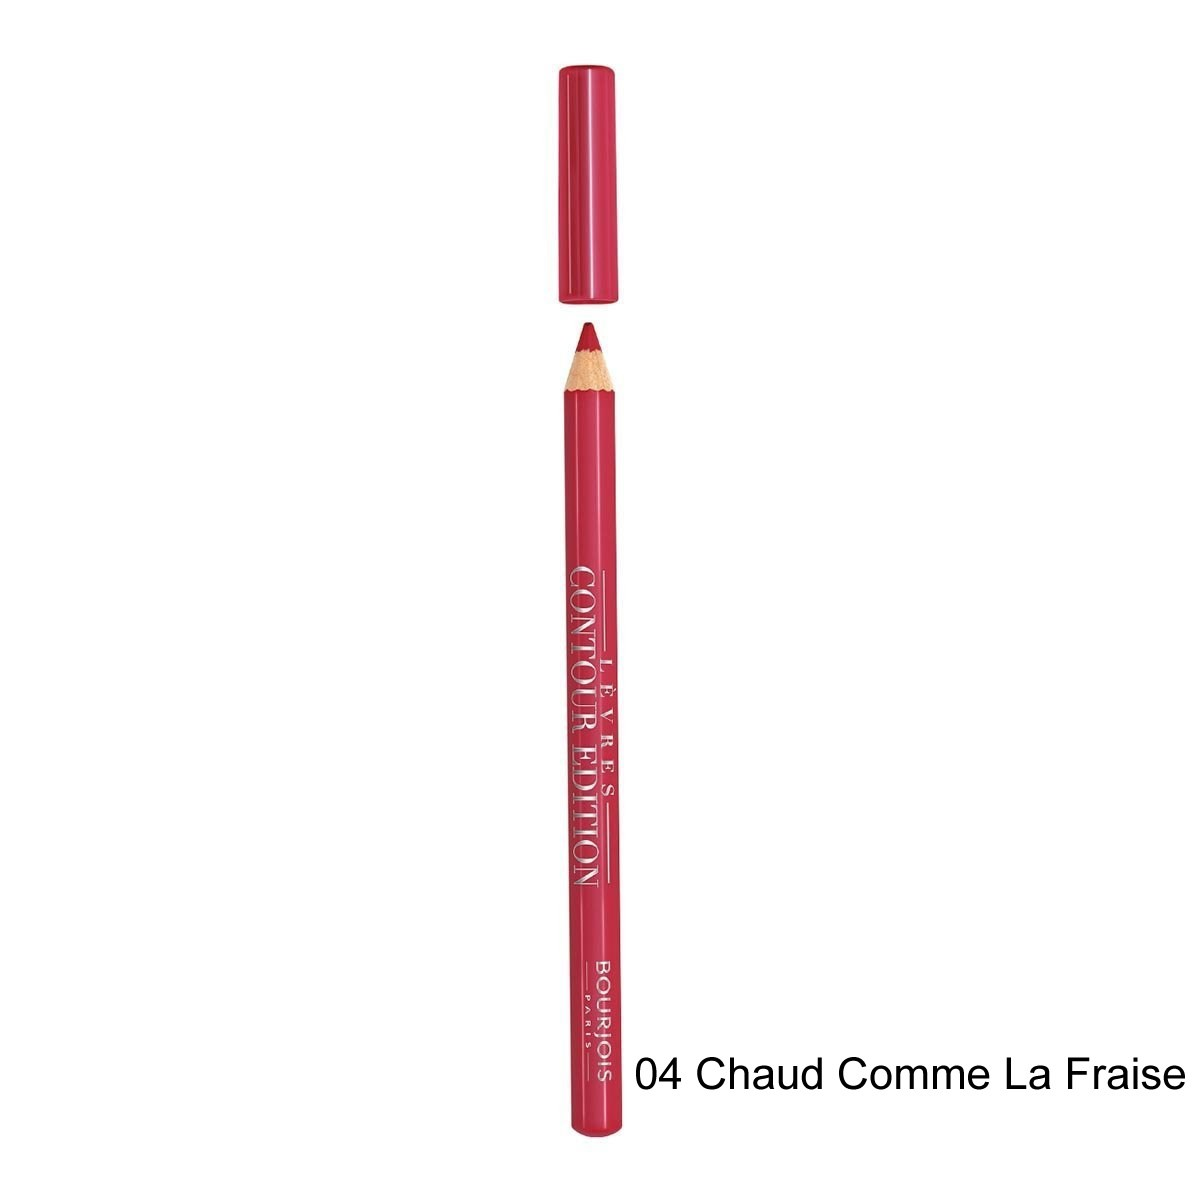 Bourjois Contour Edition Lip Crayon